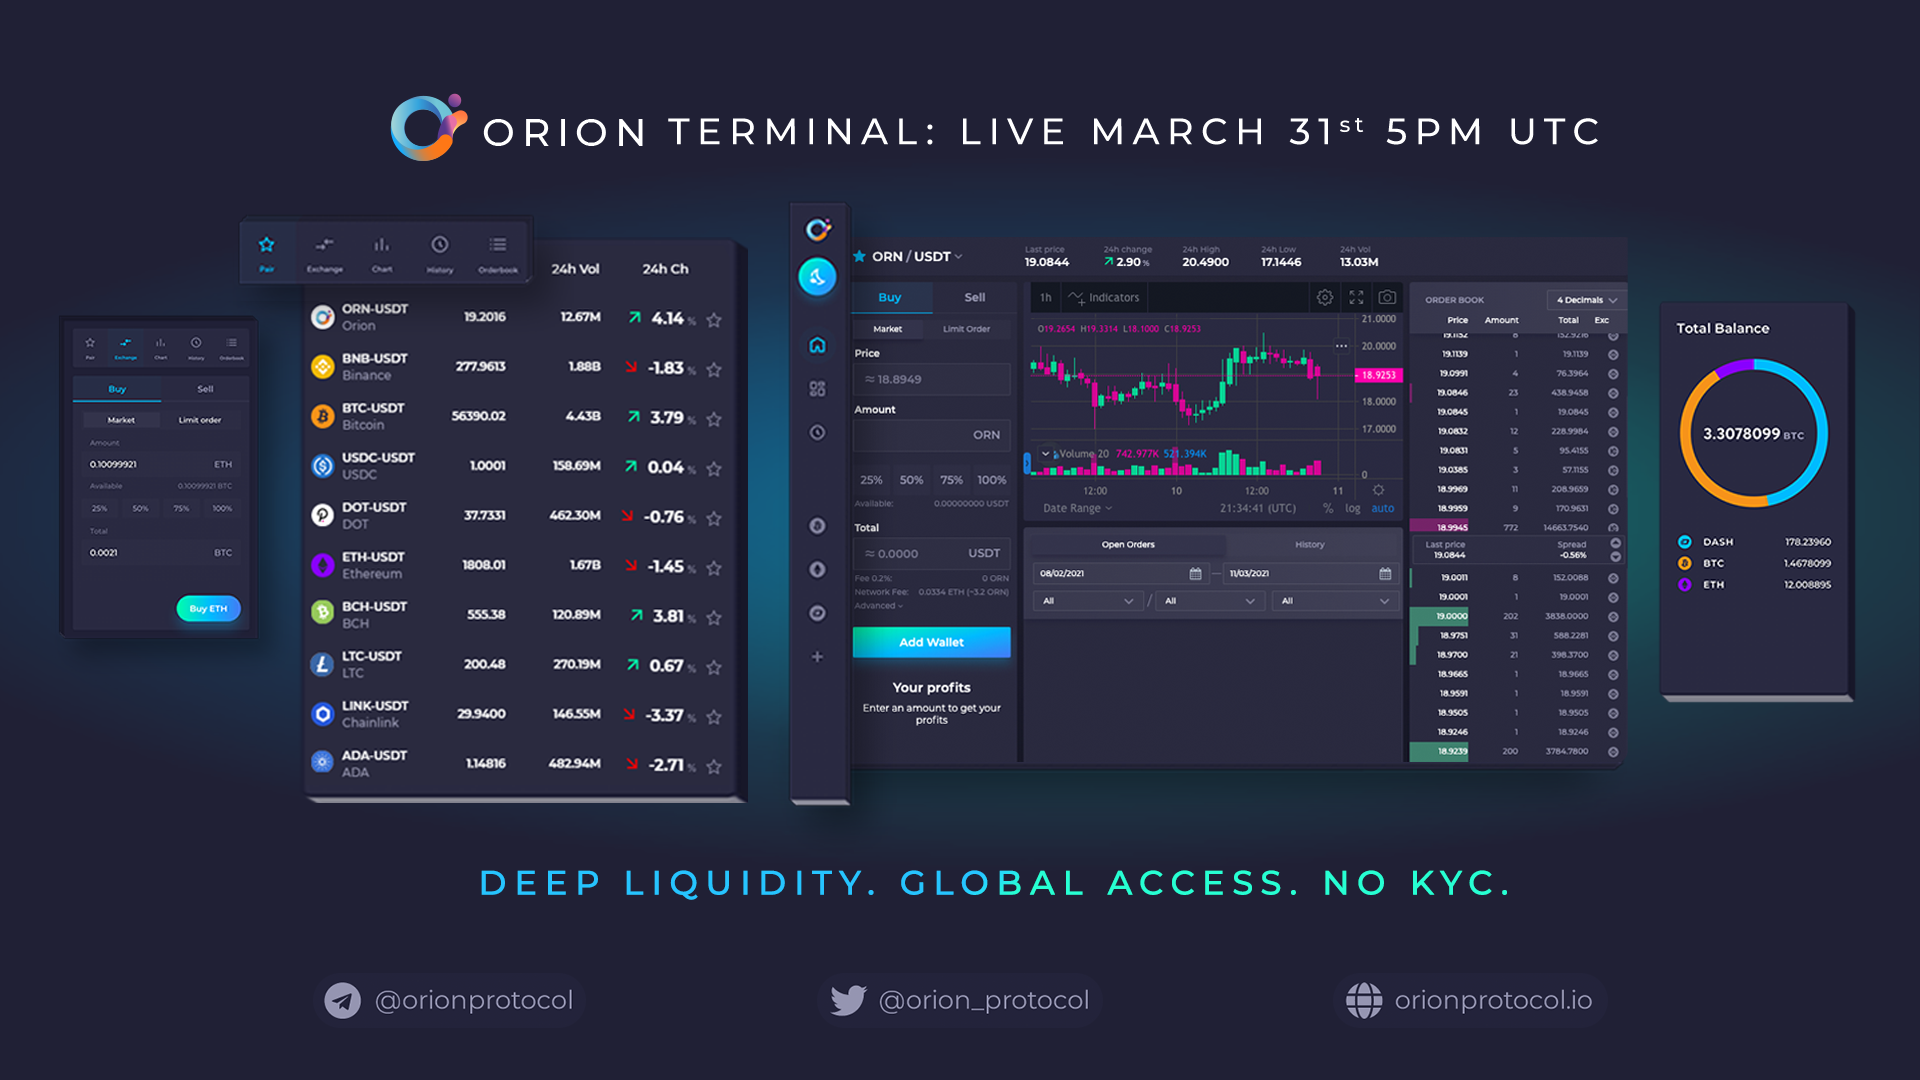 Orion Terminal is almost here.